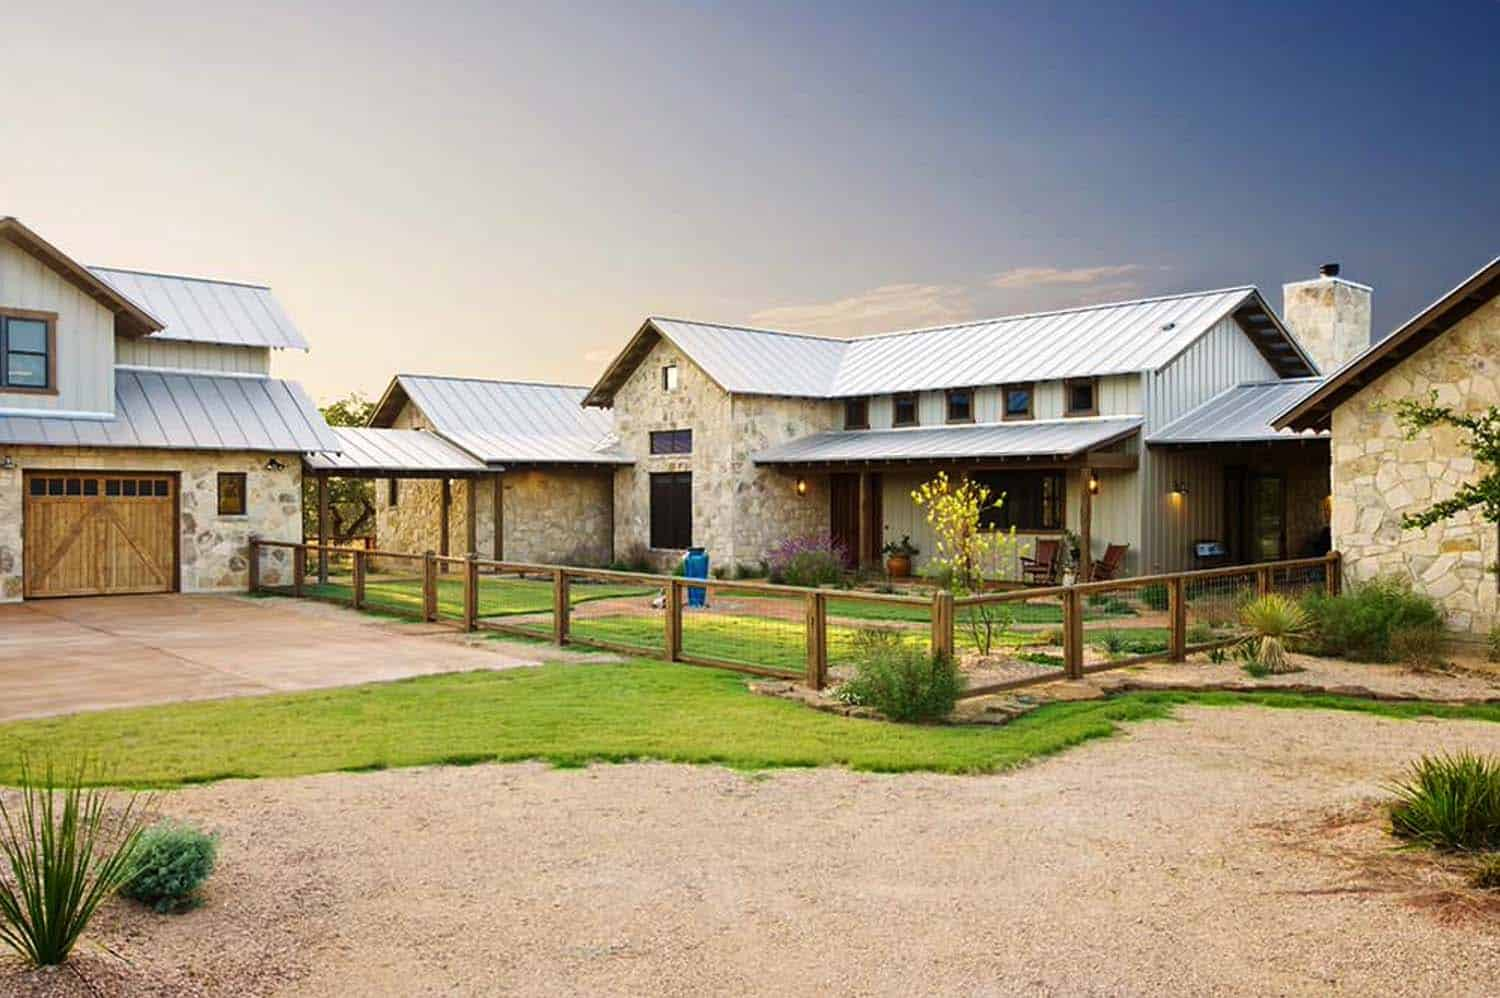 Rustic ranch house designed for family gatherings in texas Rustic architecture house plans